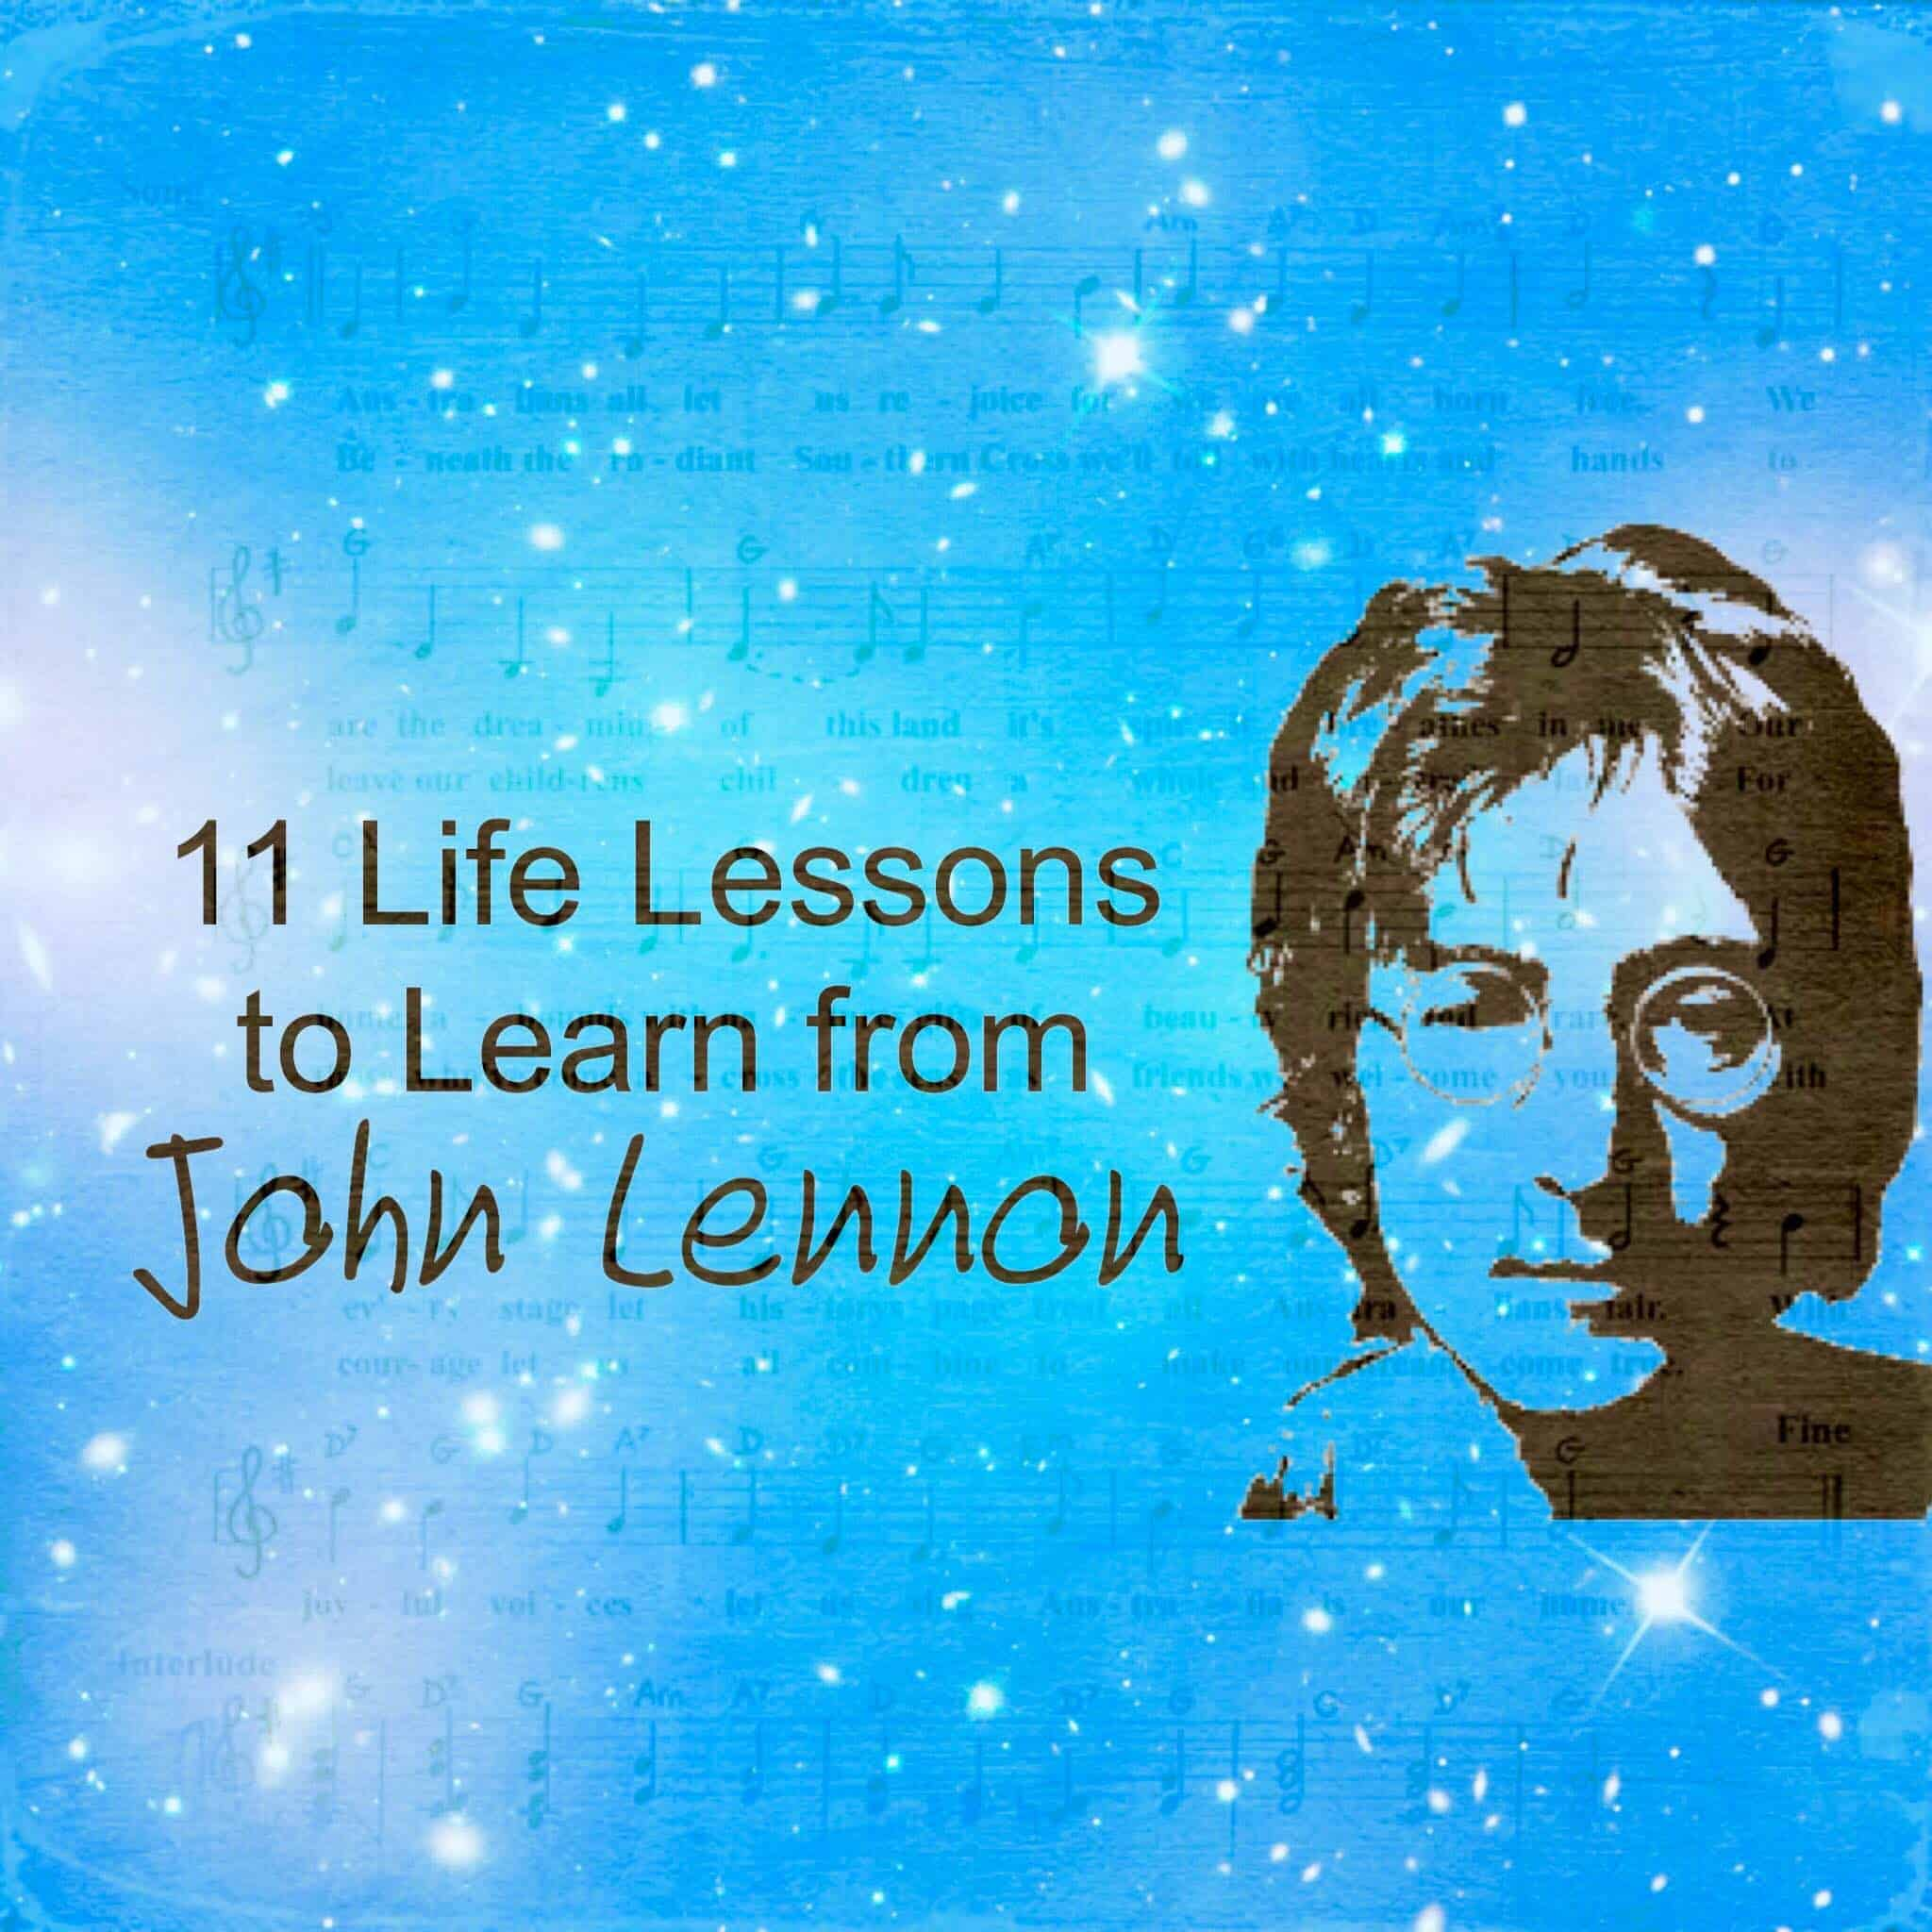 11 Life Lessons To Learn From John Lennon